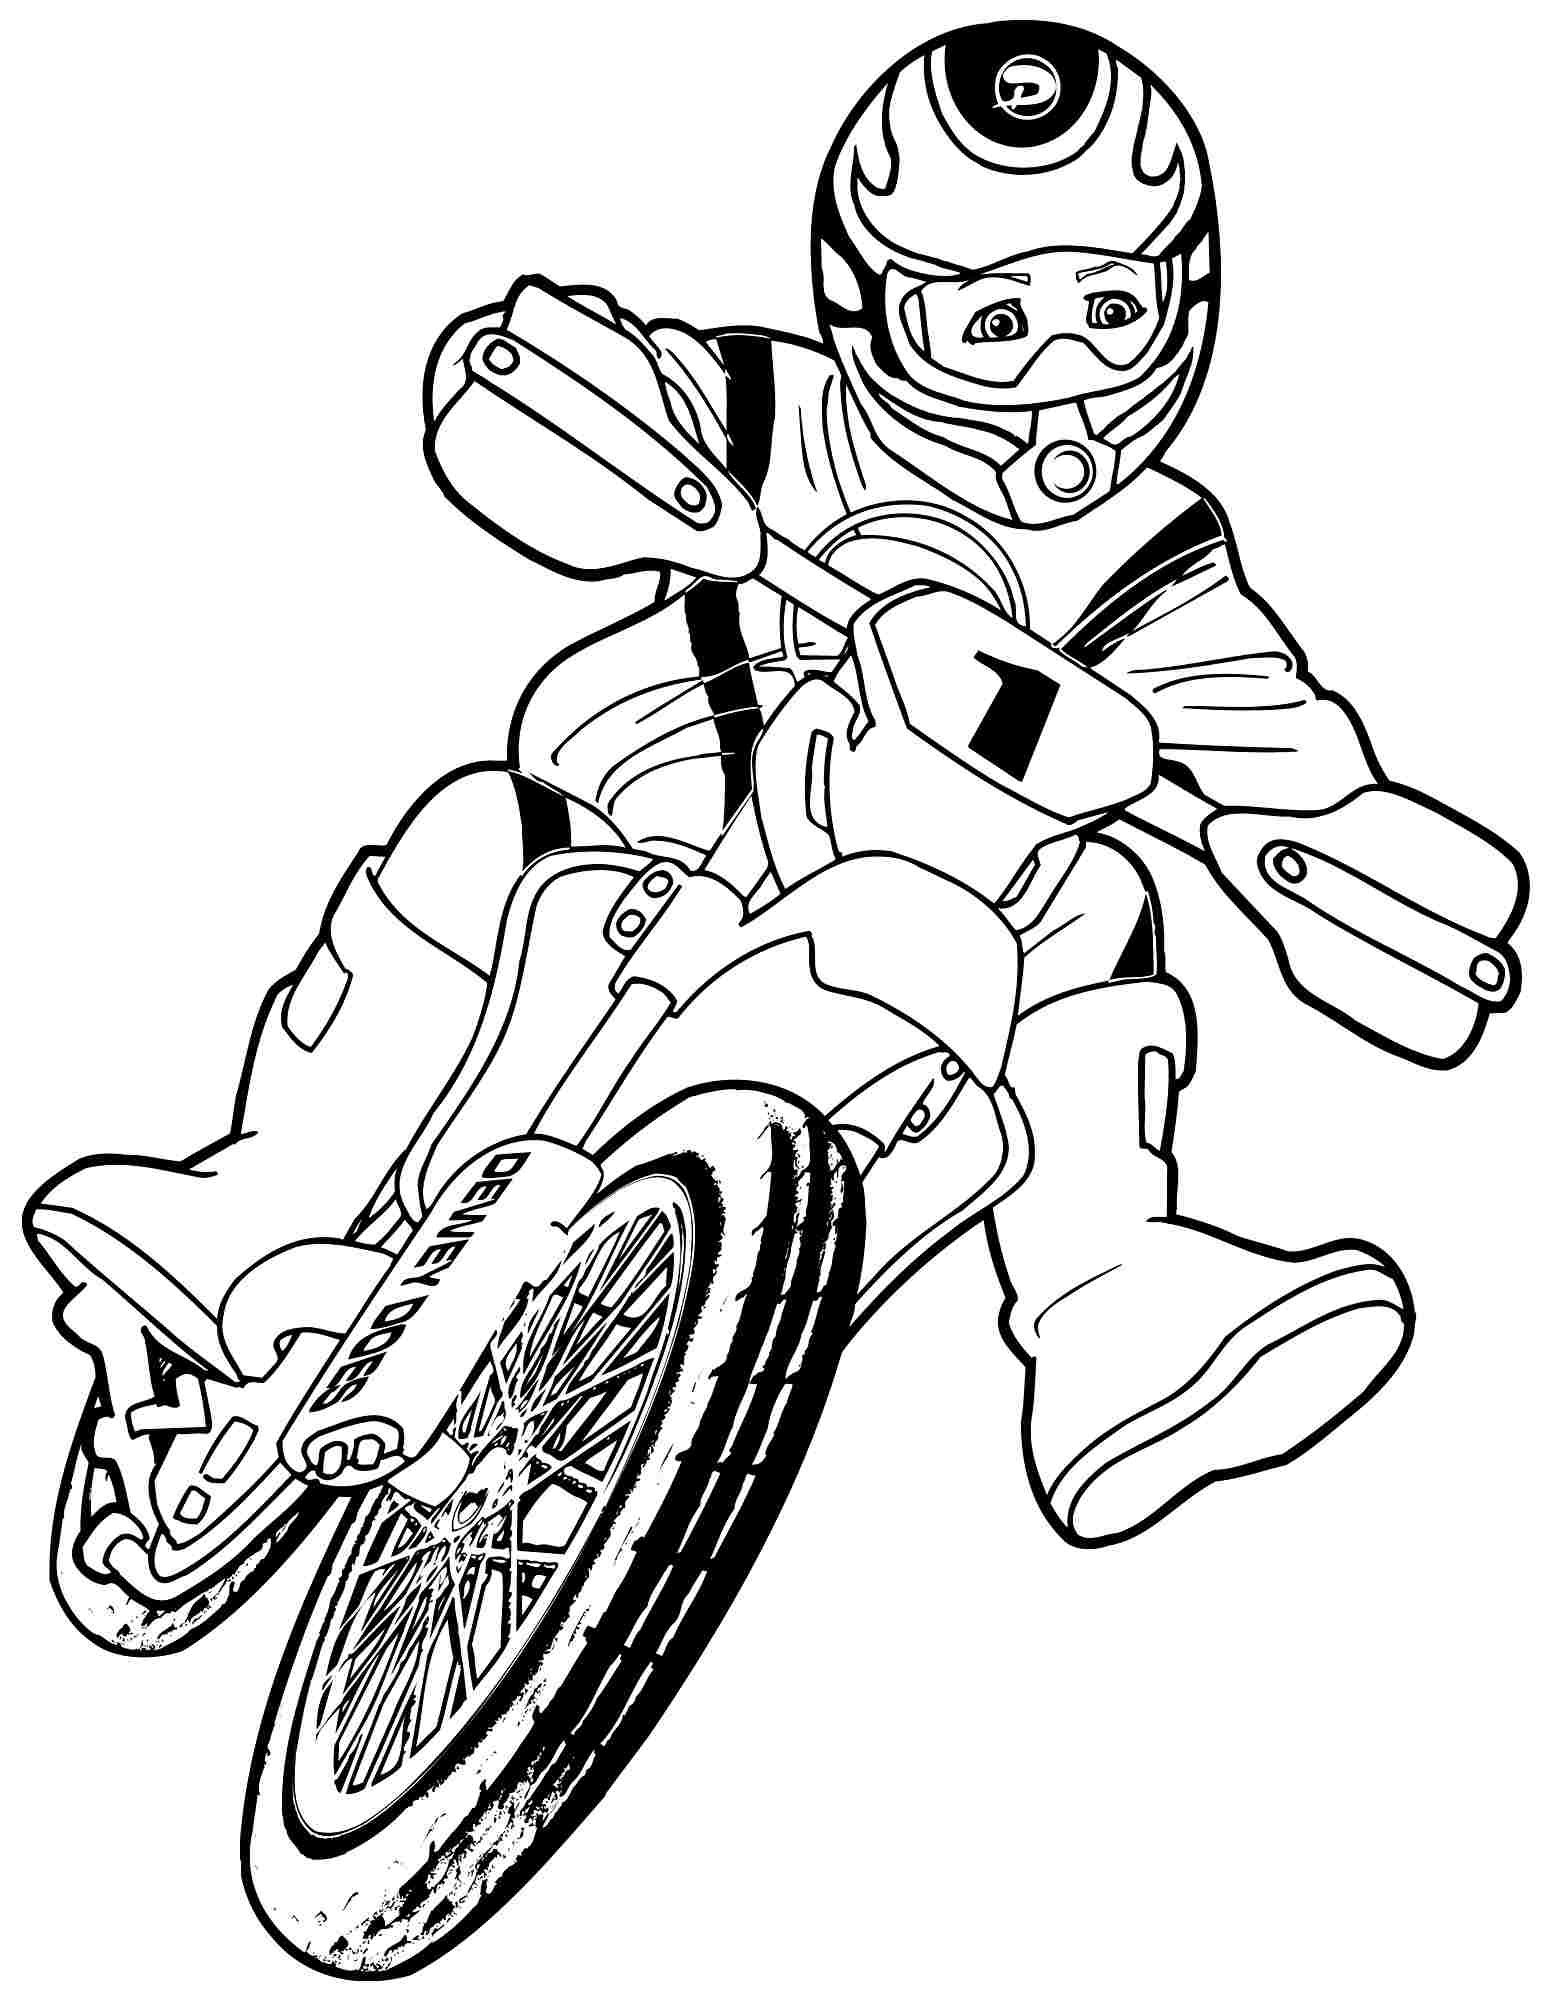 1548x2000 Just Arrived Motorcycle Coloring Pages Best To Color Free